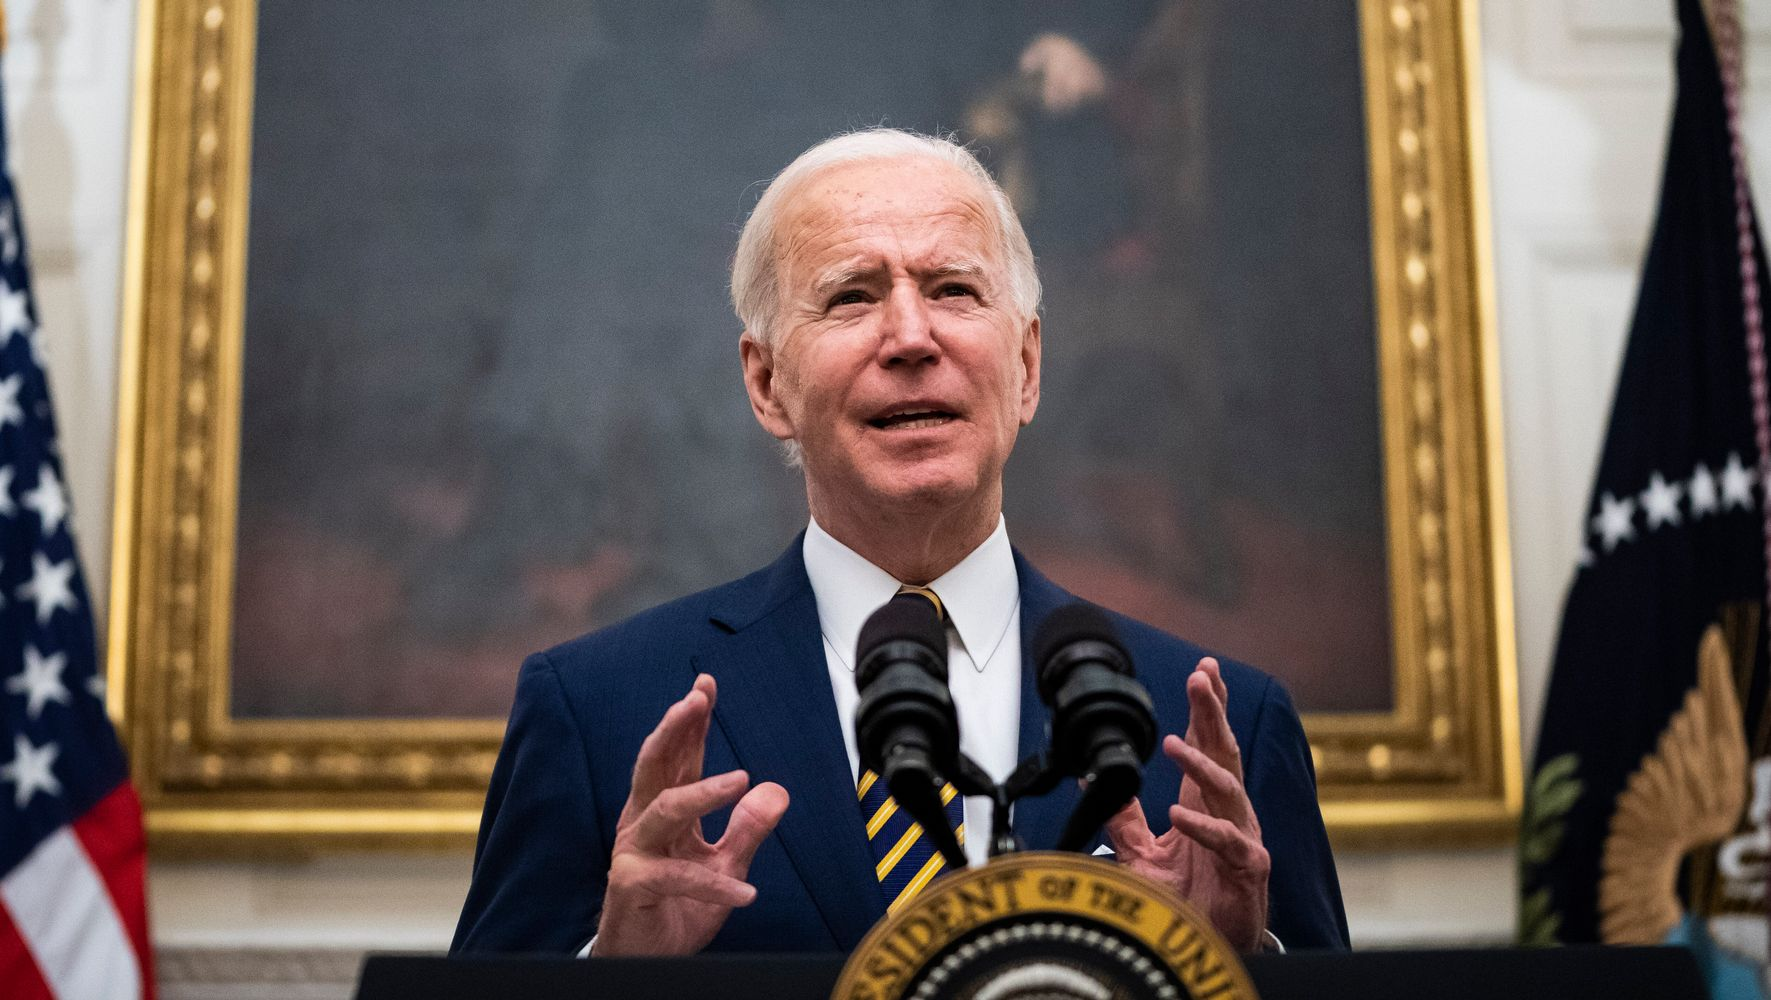 Federal Judges Are Retiring Now That Joe Biden Will Pick Their Replacements